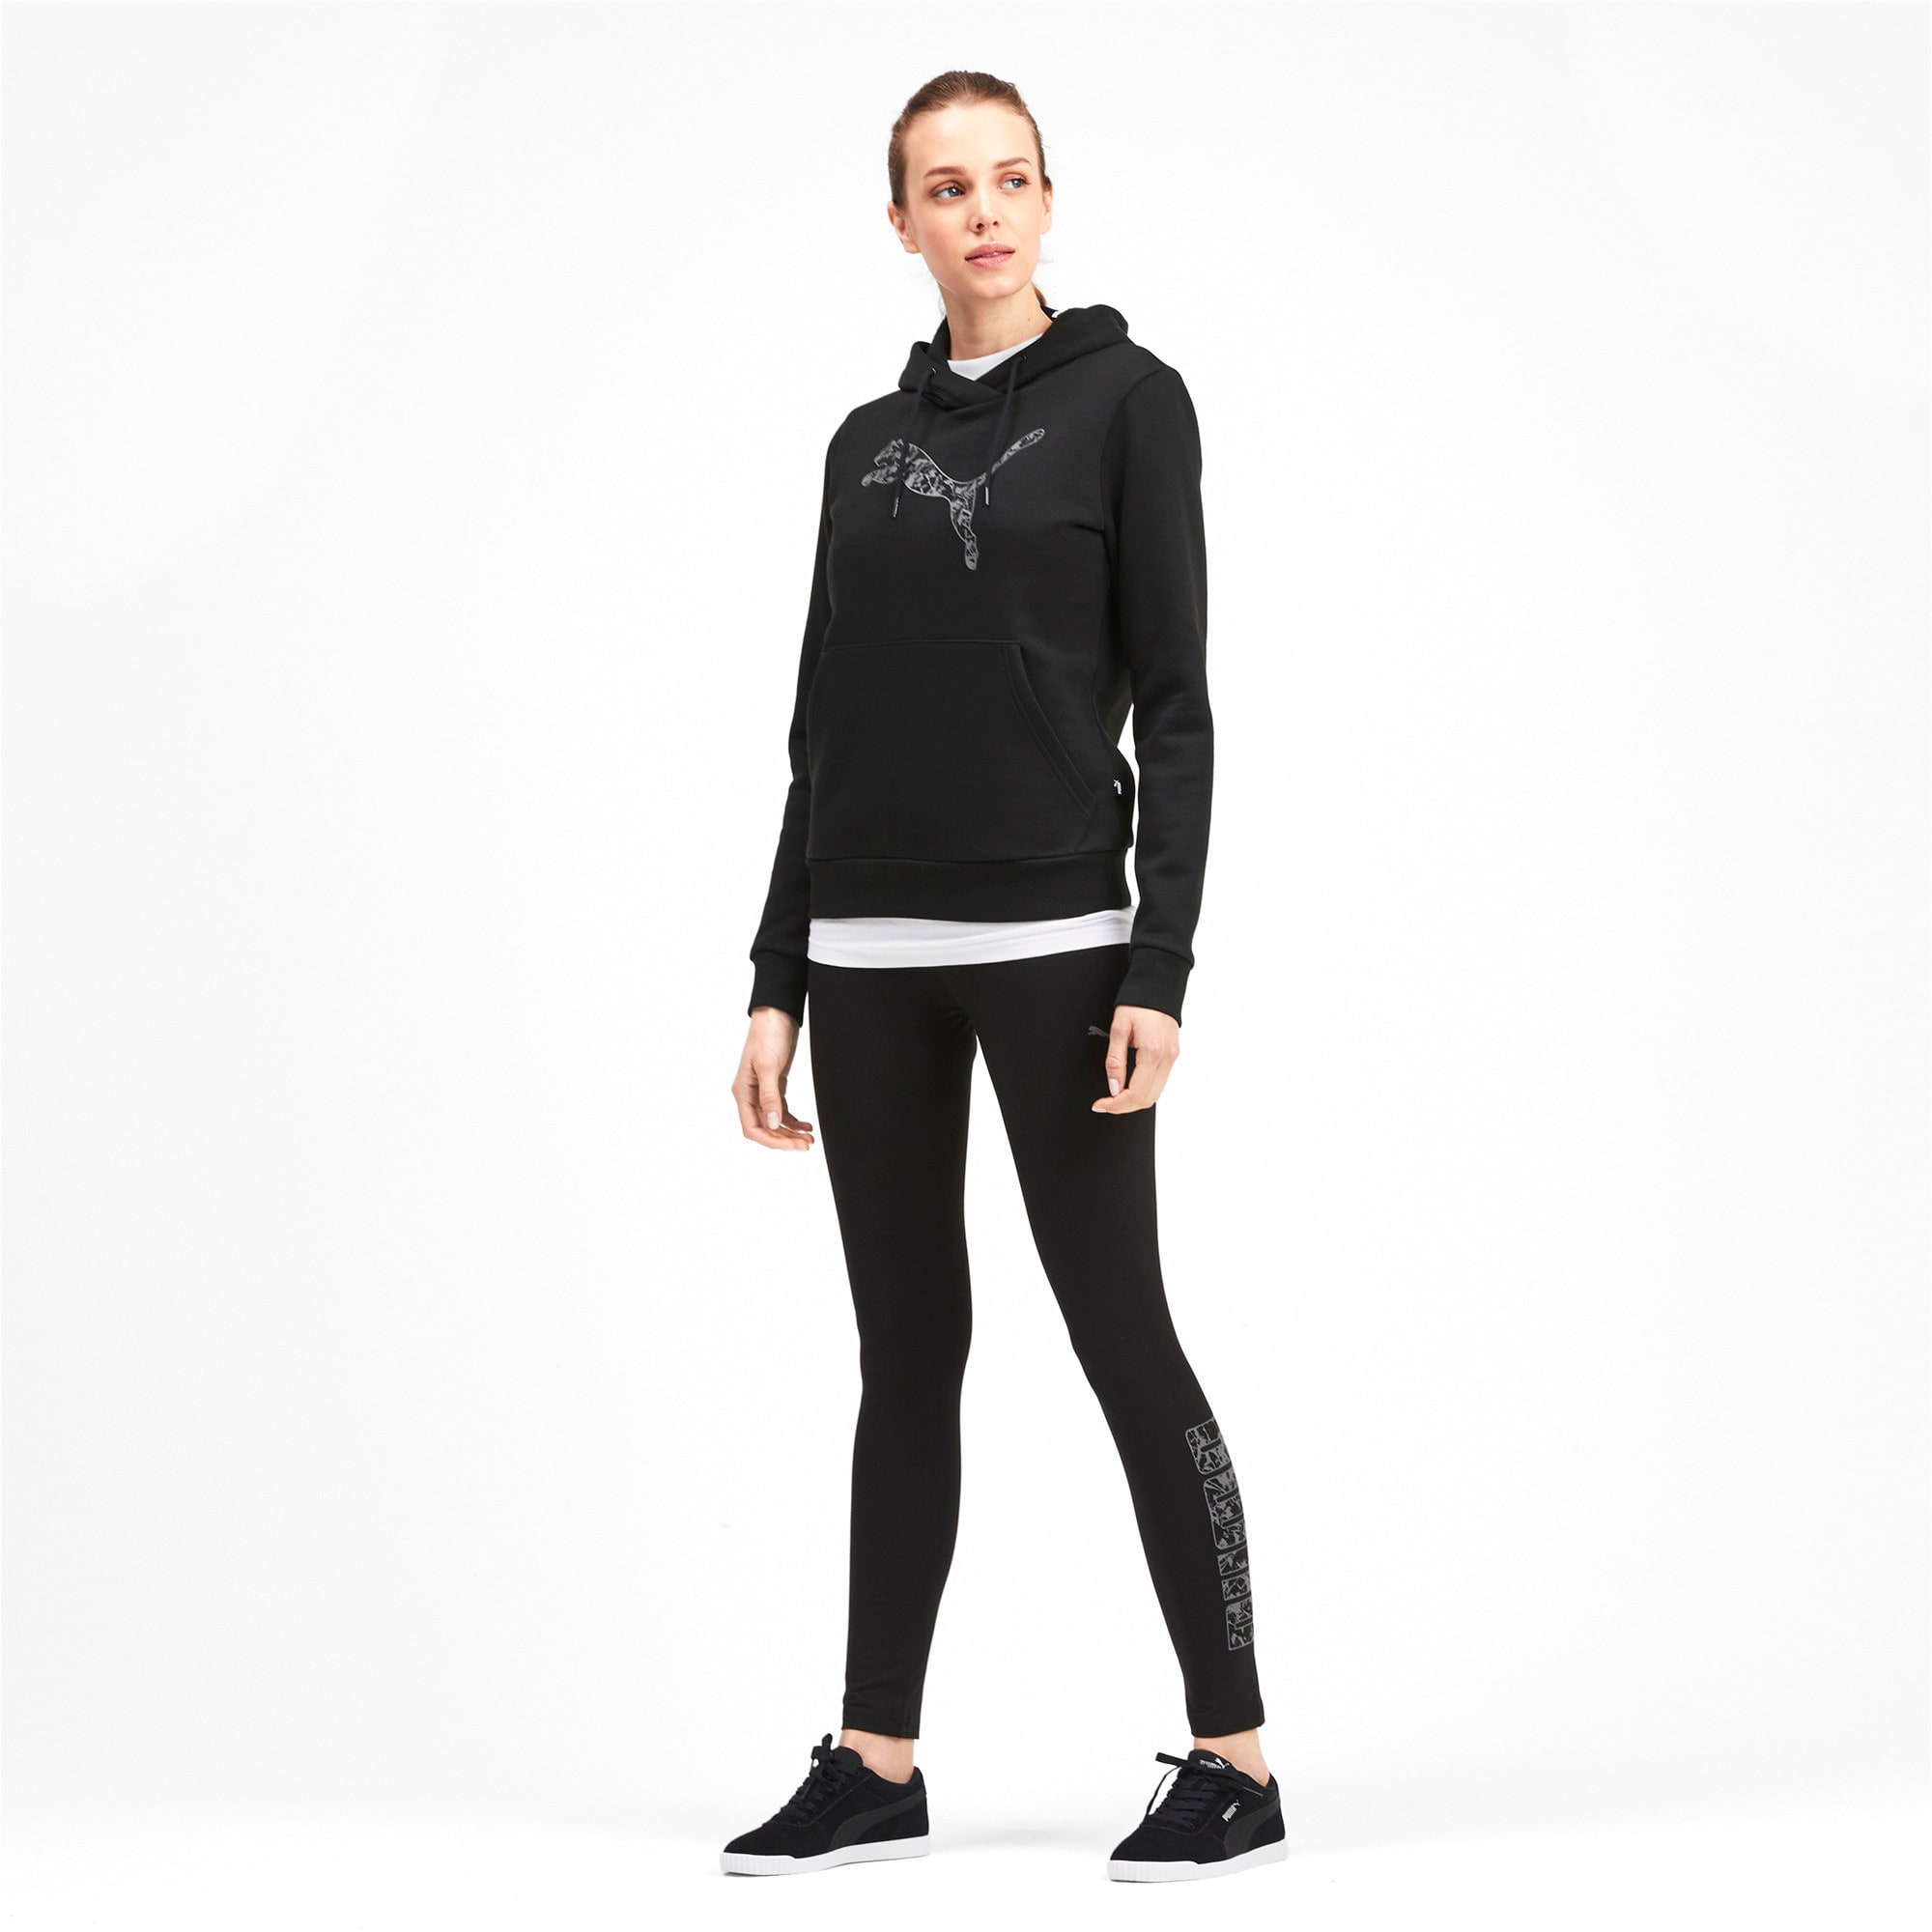 Thumbnail 3 of Kangaroo Hoodie, Puma Black, medium-IND